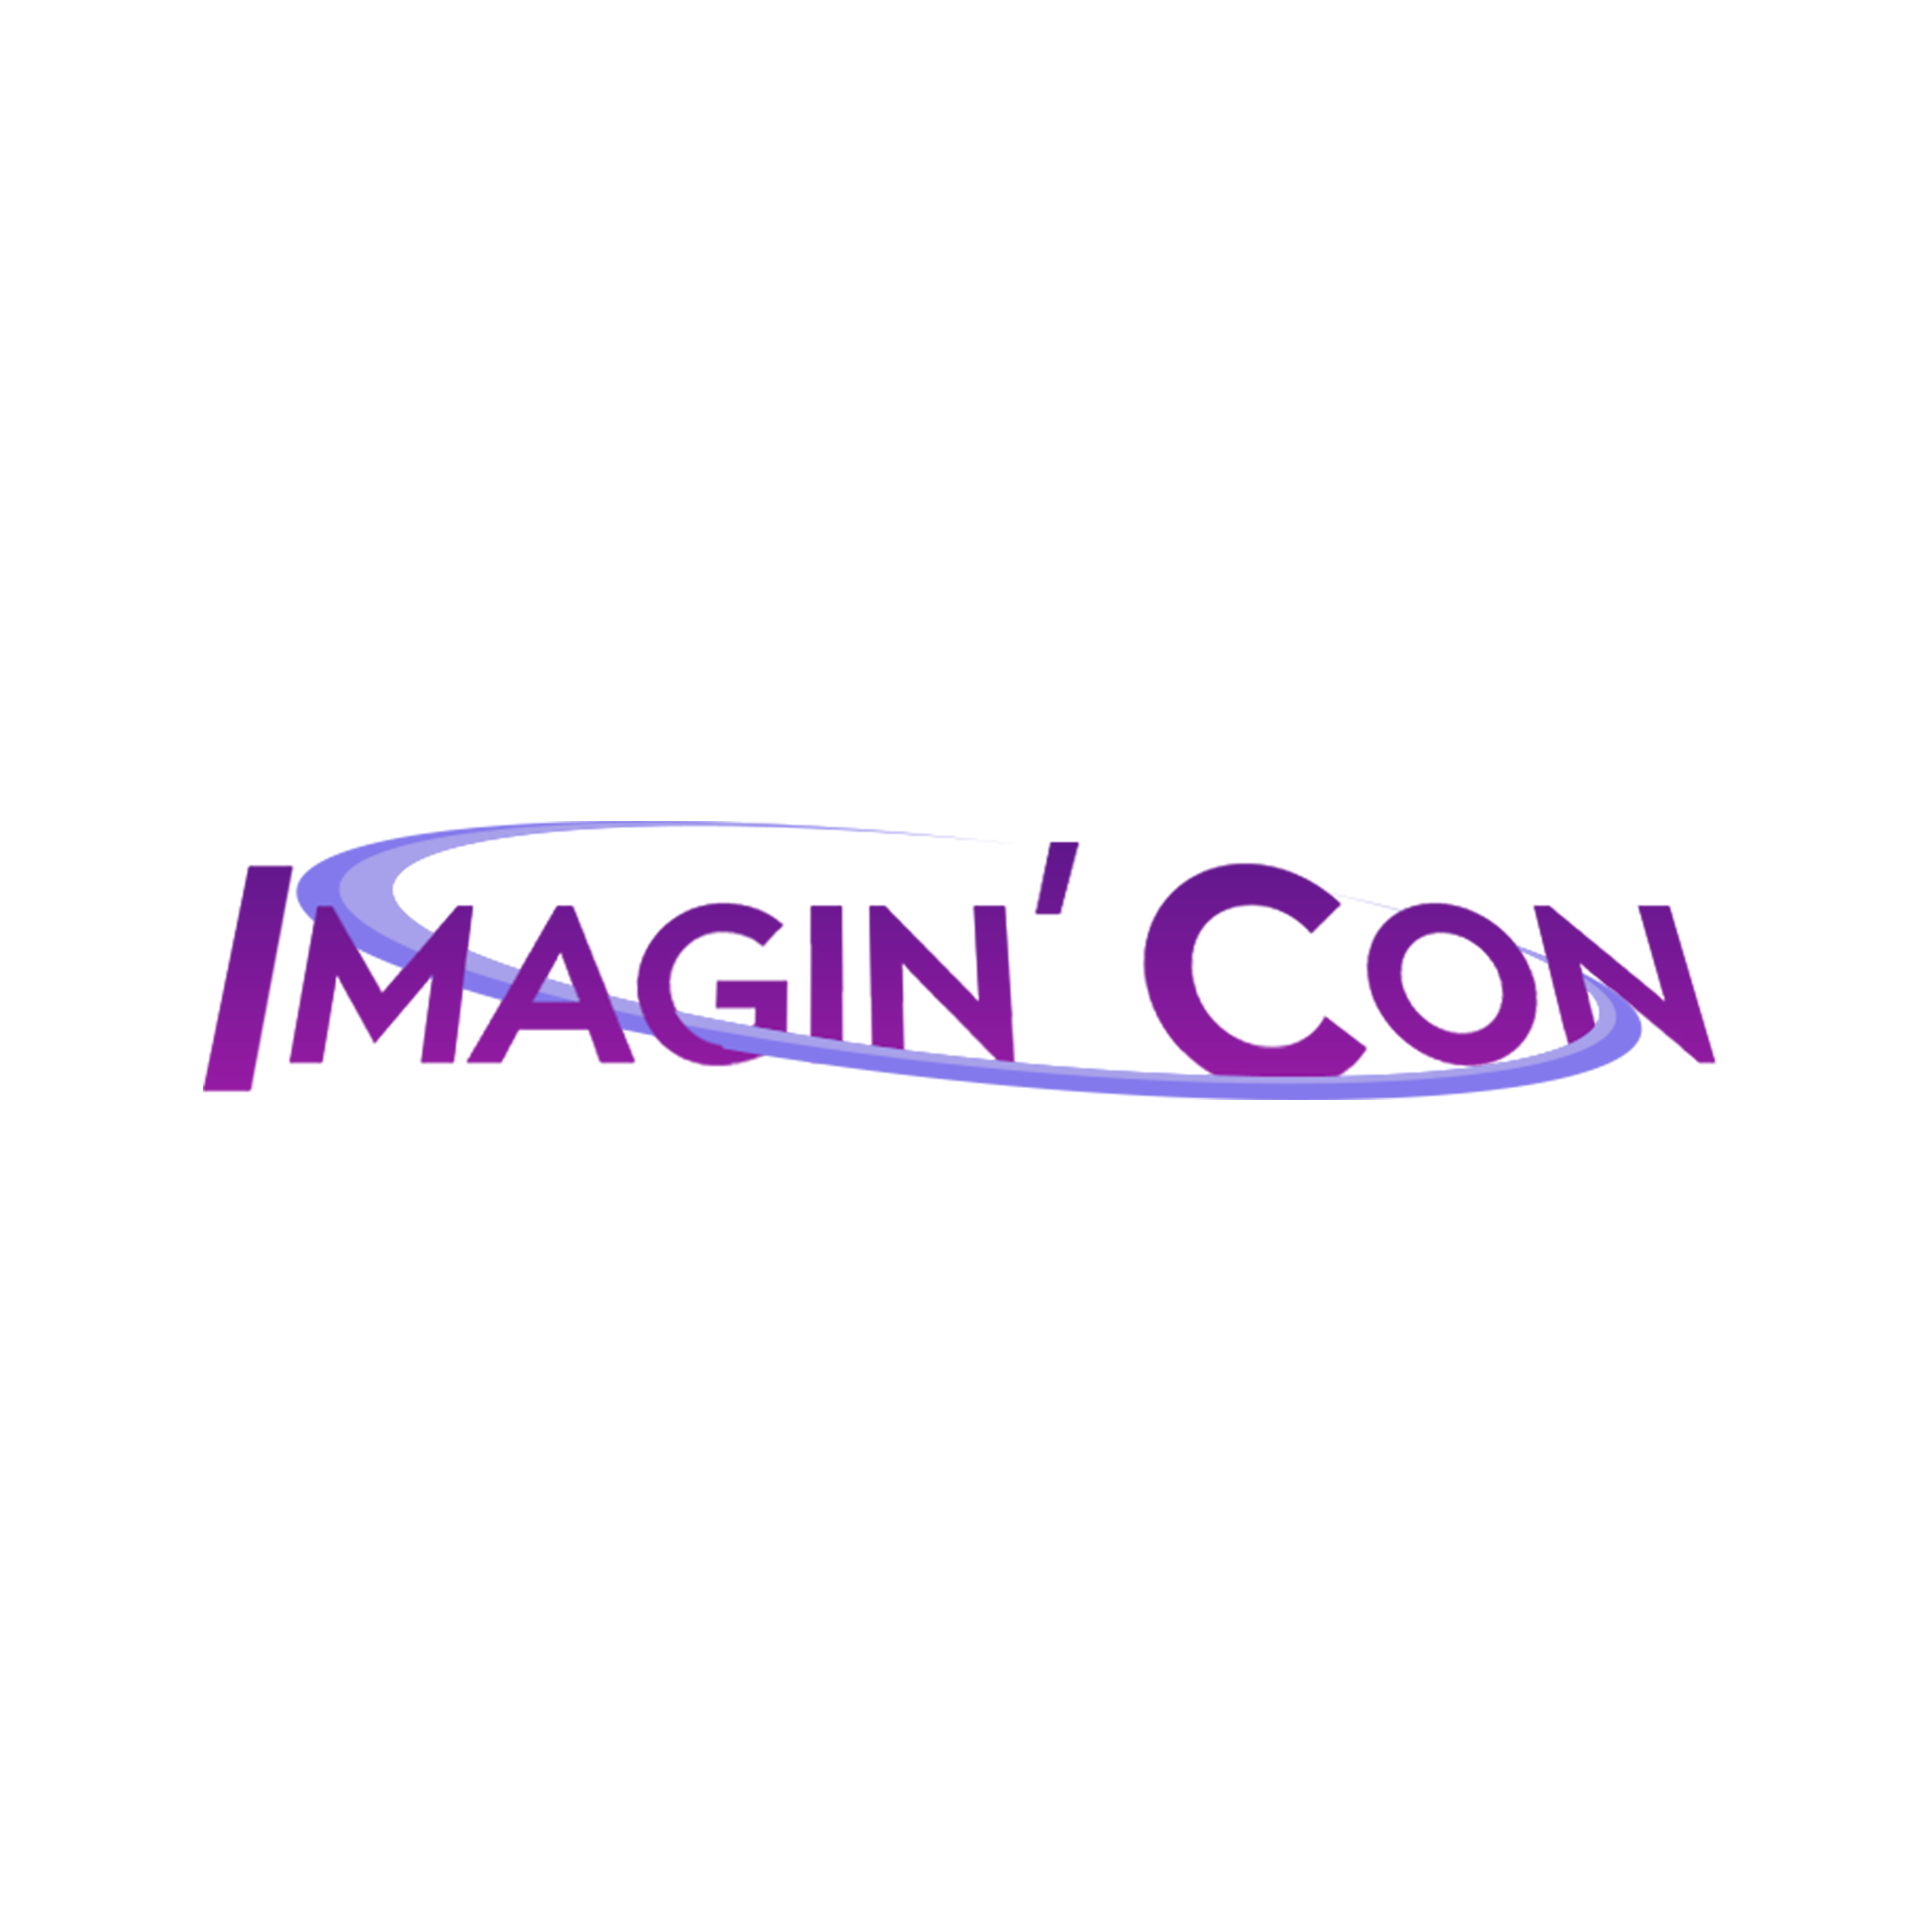 Imagin' Con